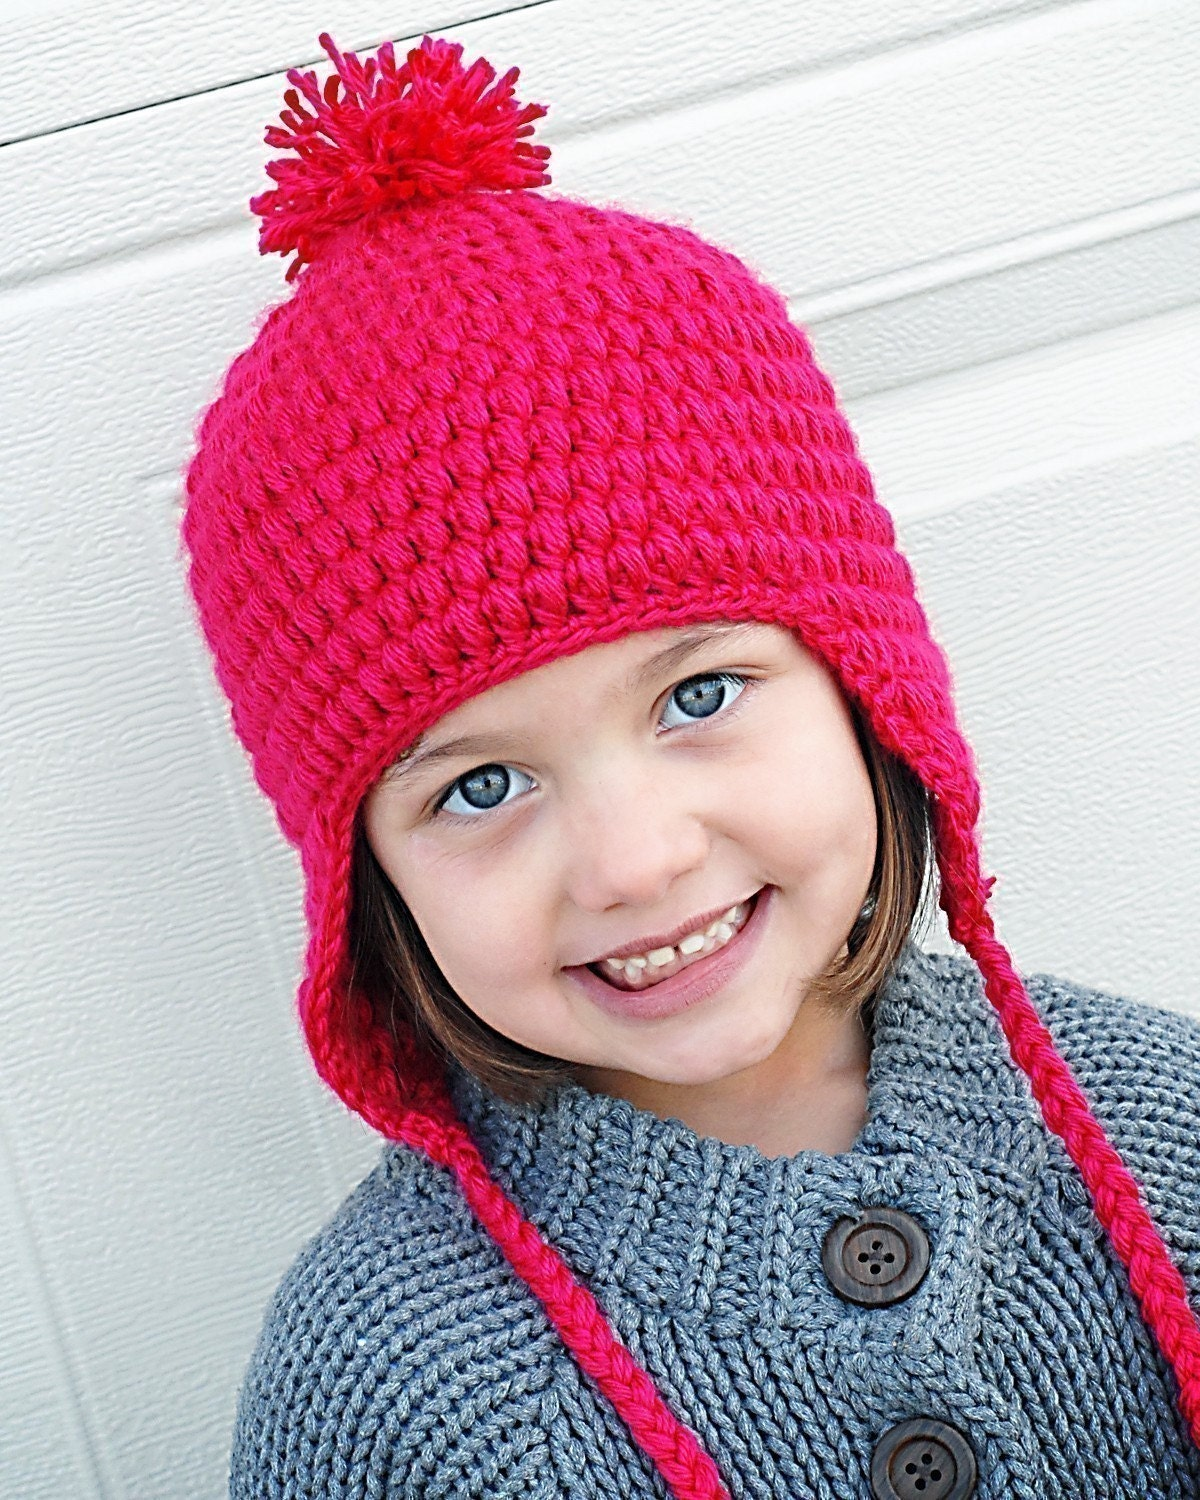 Free Crochet Patterns For Earflap Hats : Puffy Earflap Hat Crochet Pattern Instant by adrienneengar ...